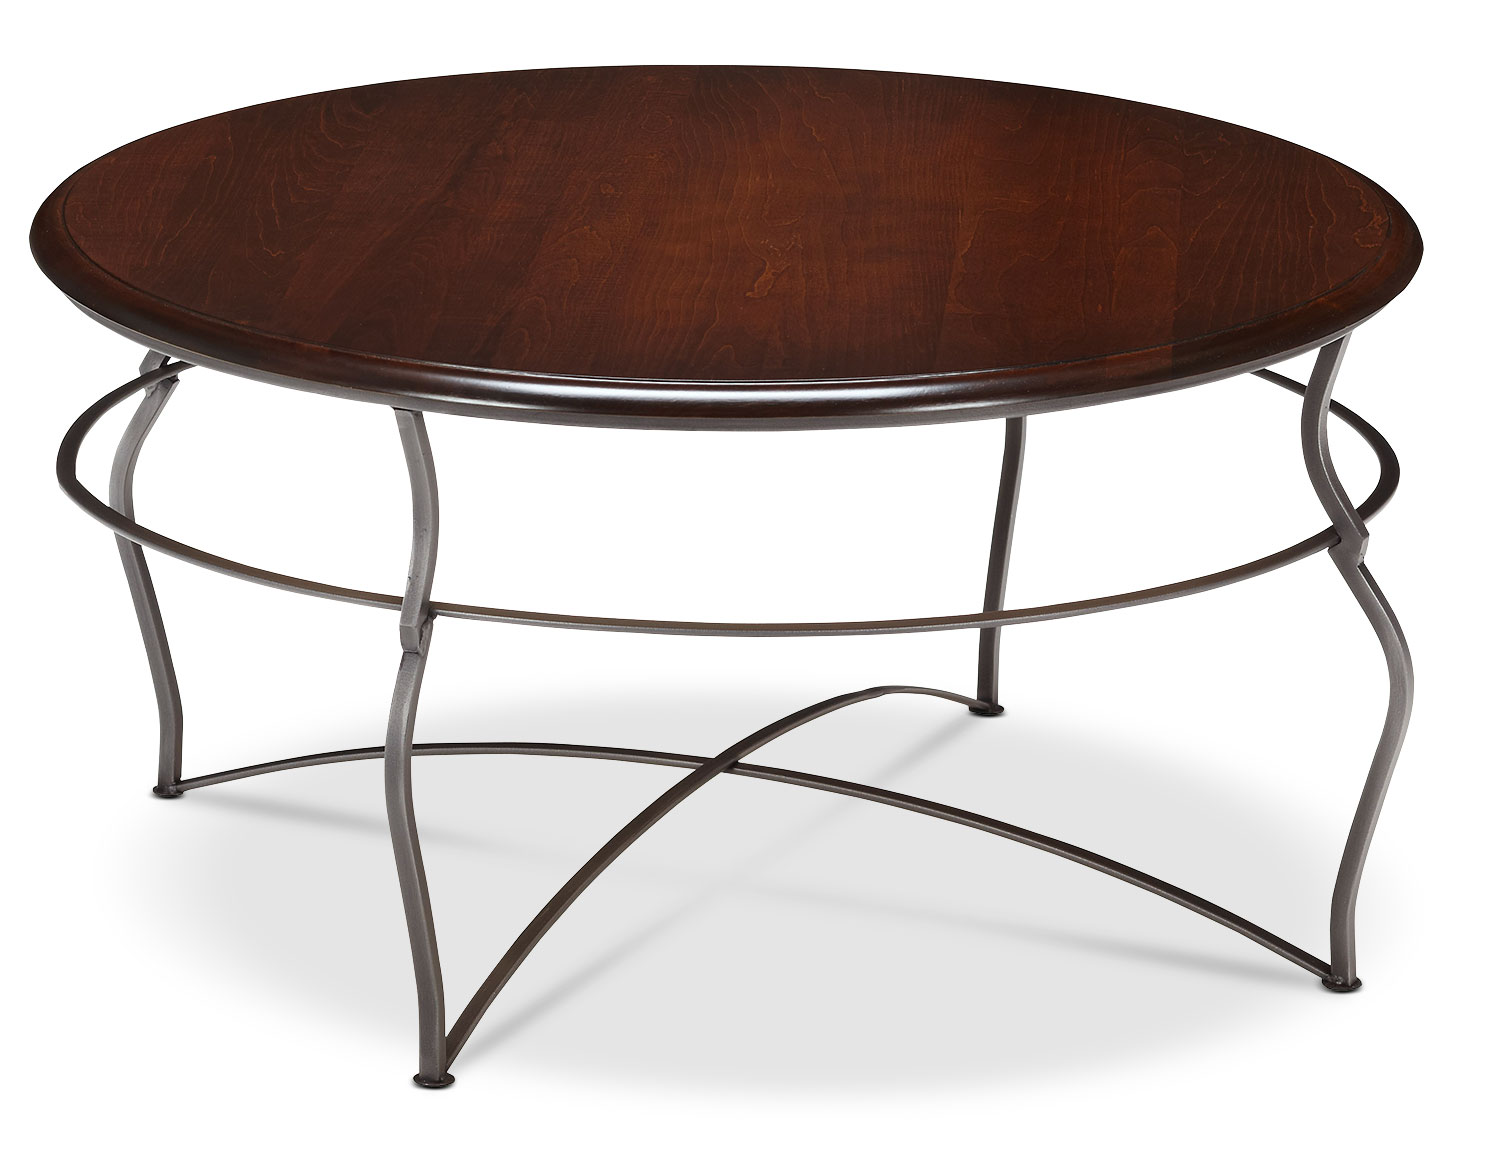 Online Only - Adele Coffee Table - Brown Cherry with Pewter Base